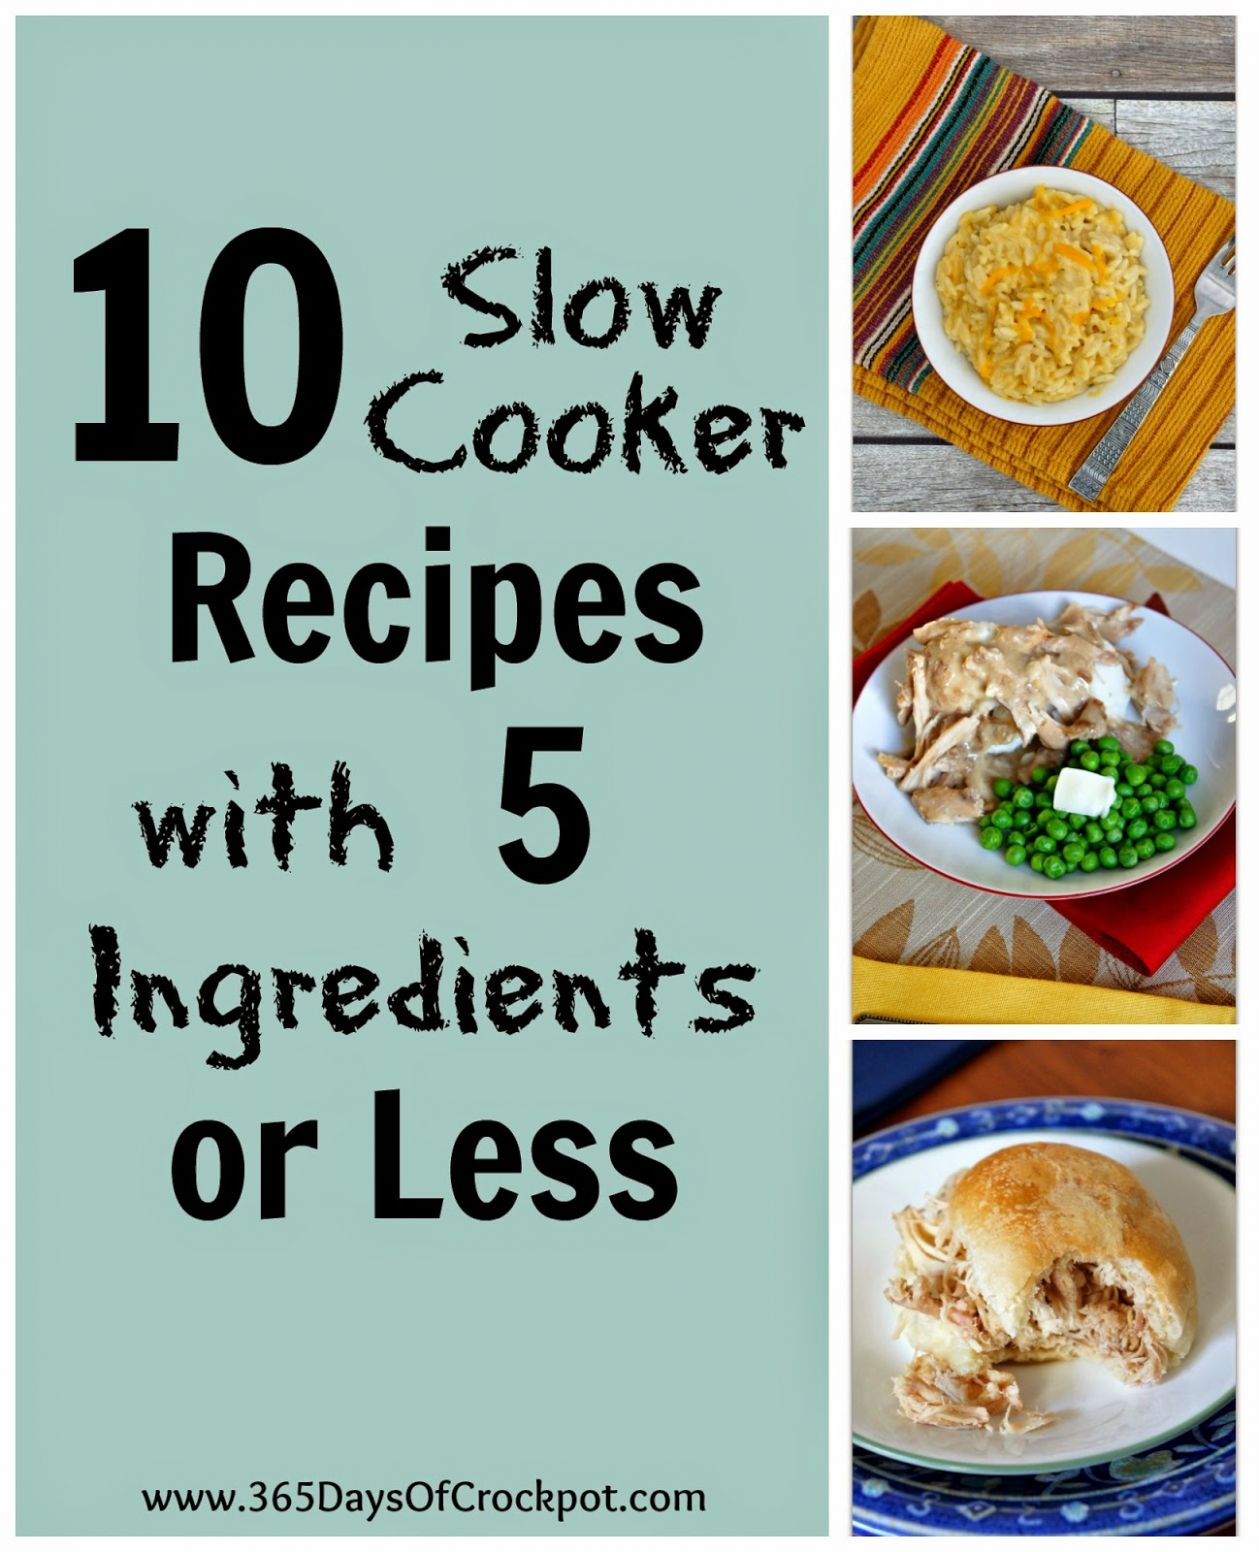 10 Slow Cooker Recipes with 10 ingredients or less! - 3610 Days of ..